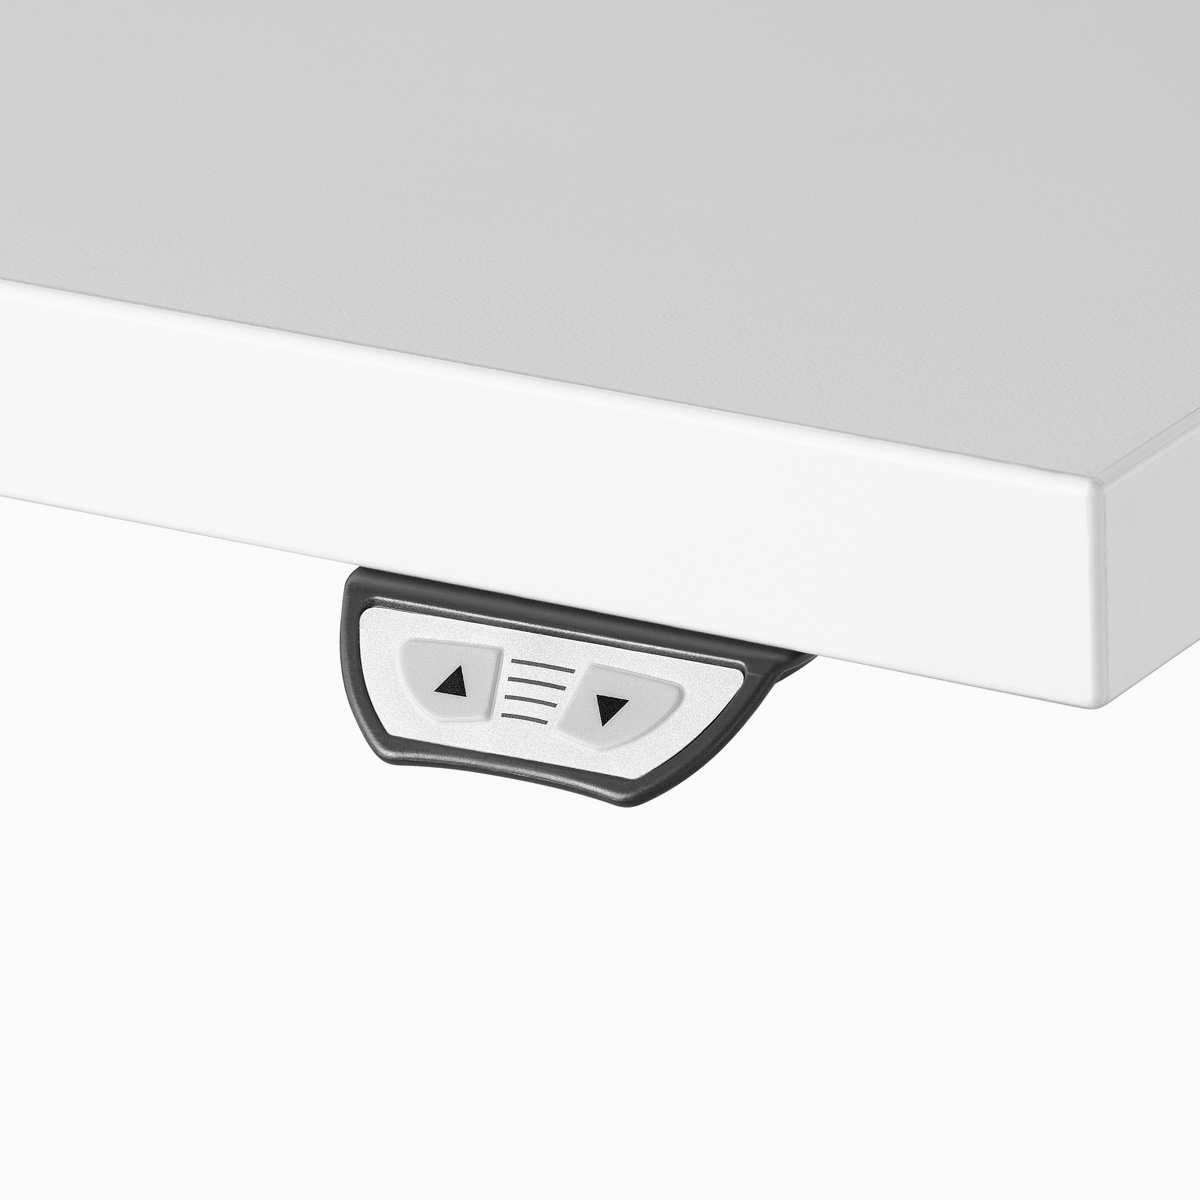 Close-up of the simple touch switch attached to a work surface.